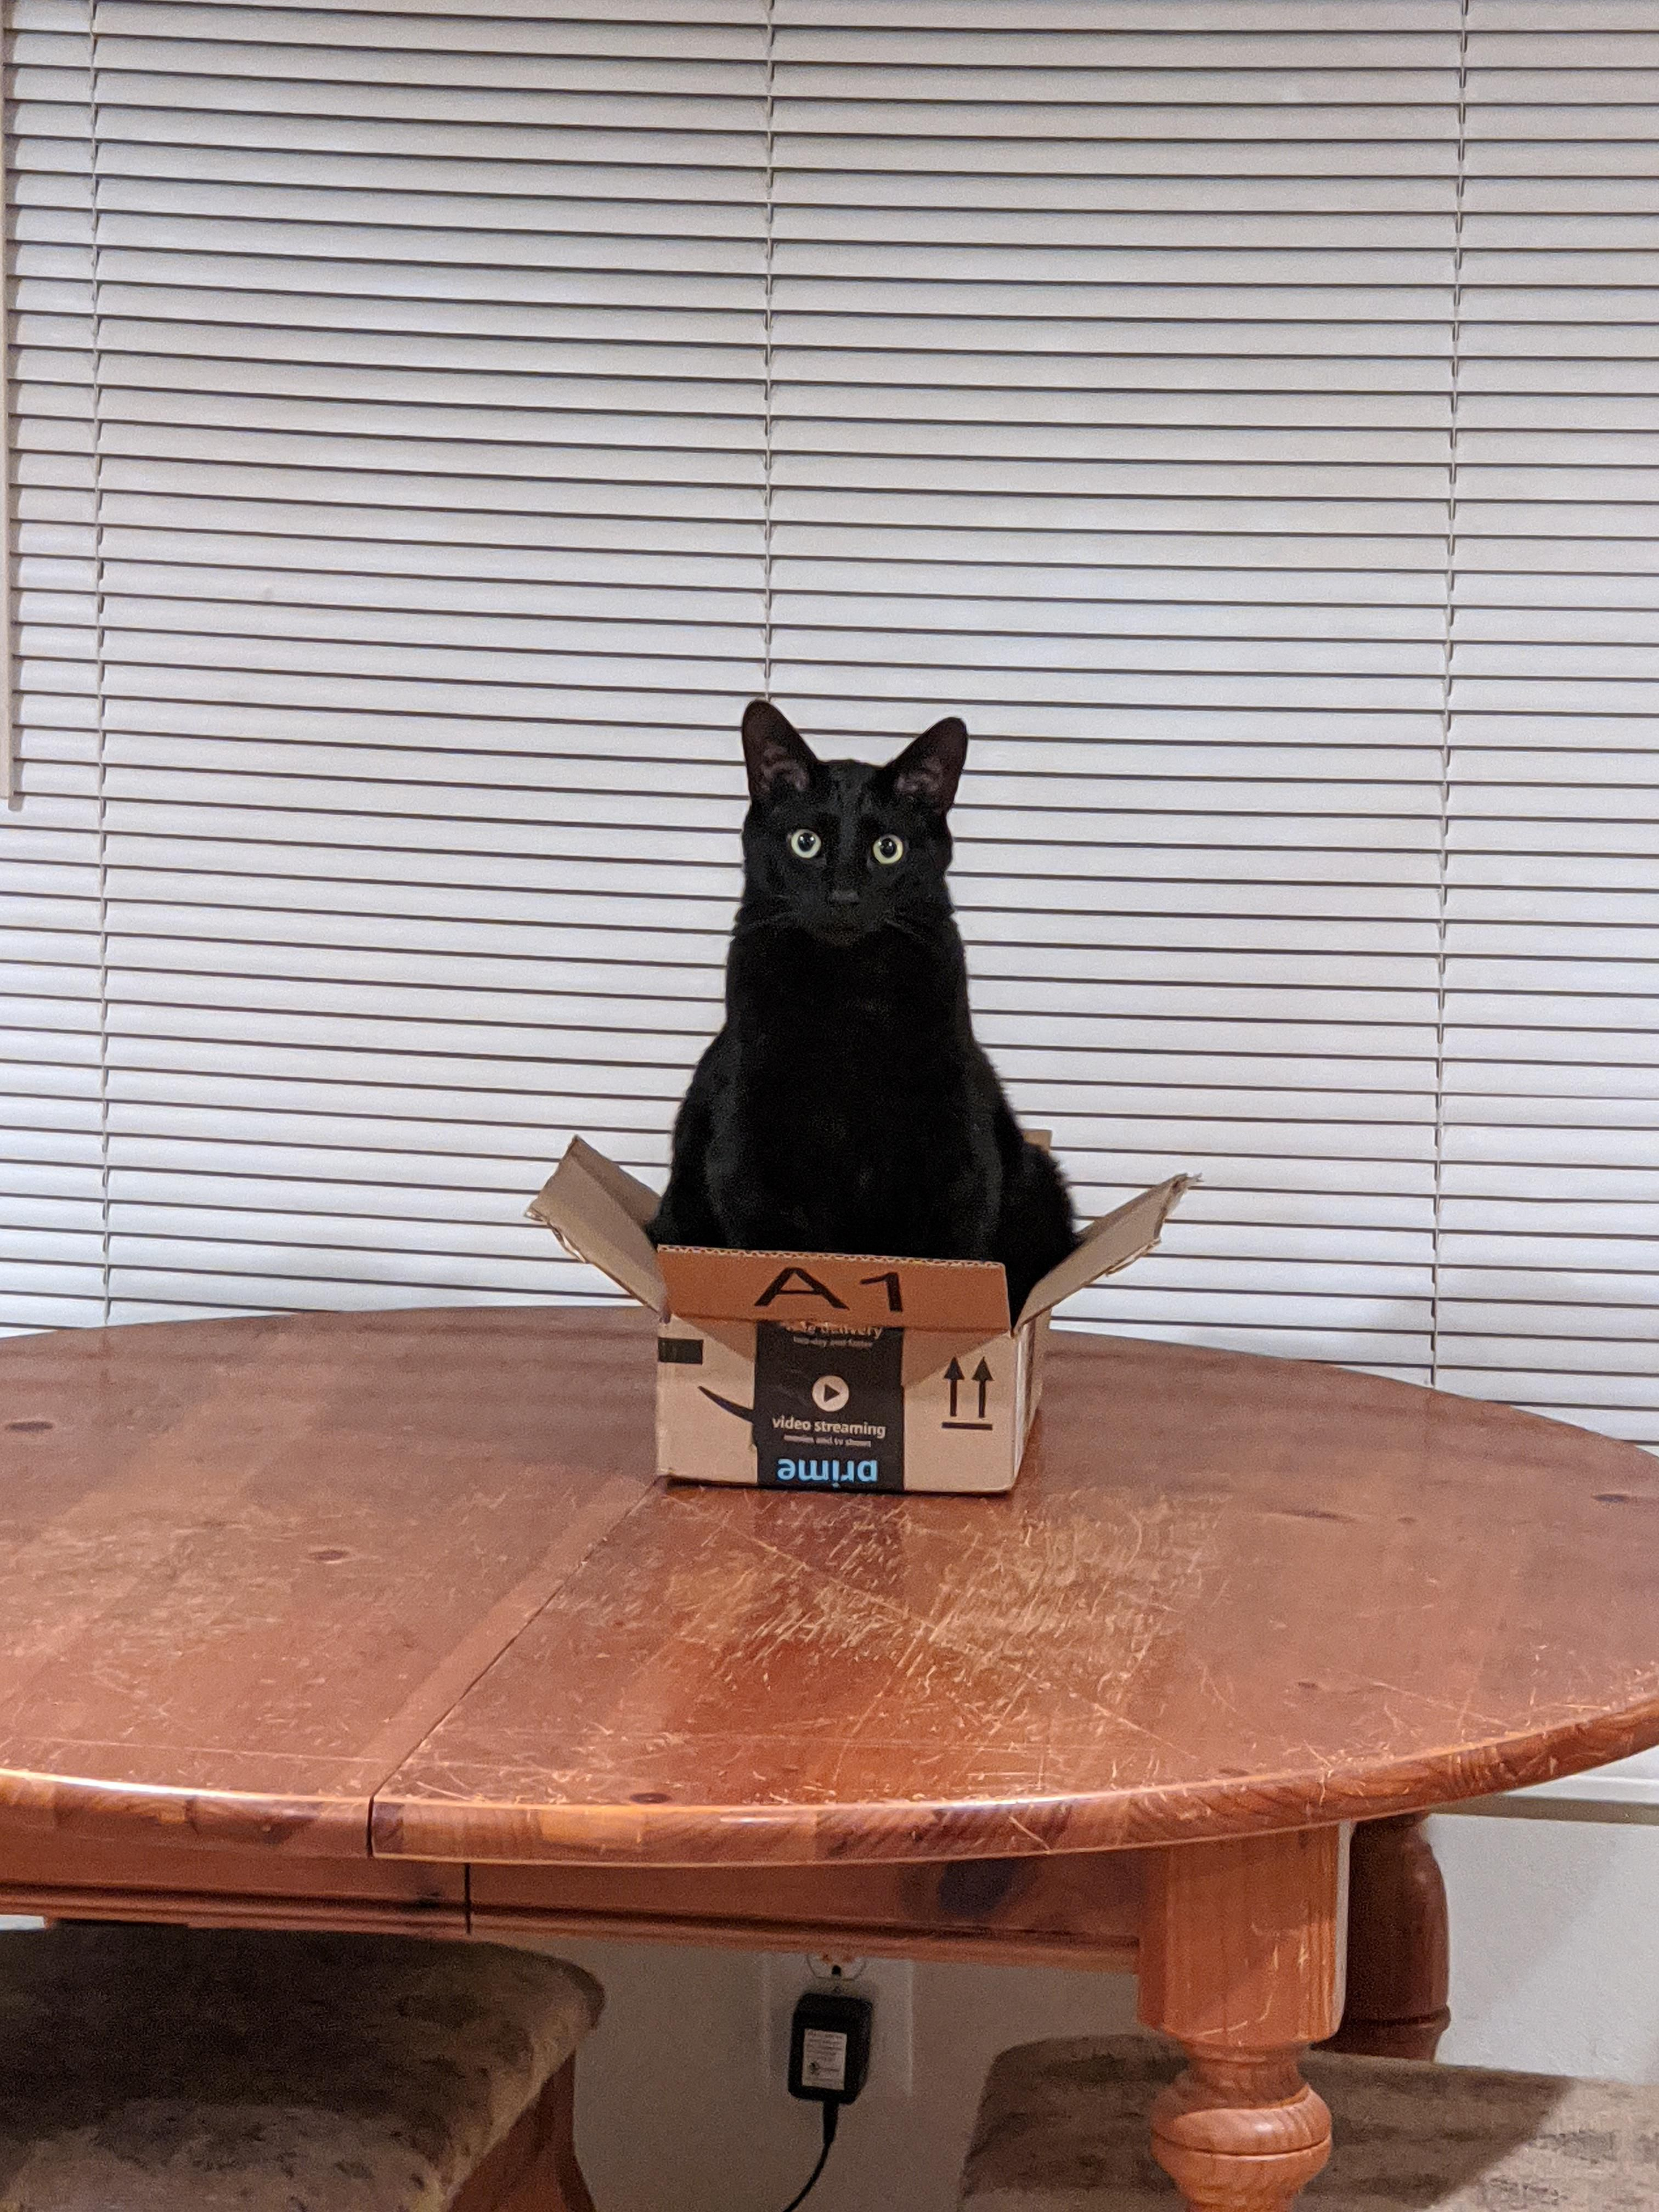 He Fits He Sits In 2020 Cats And Kittens Great Cat Cats